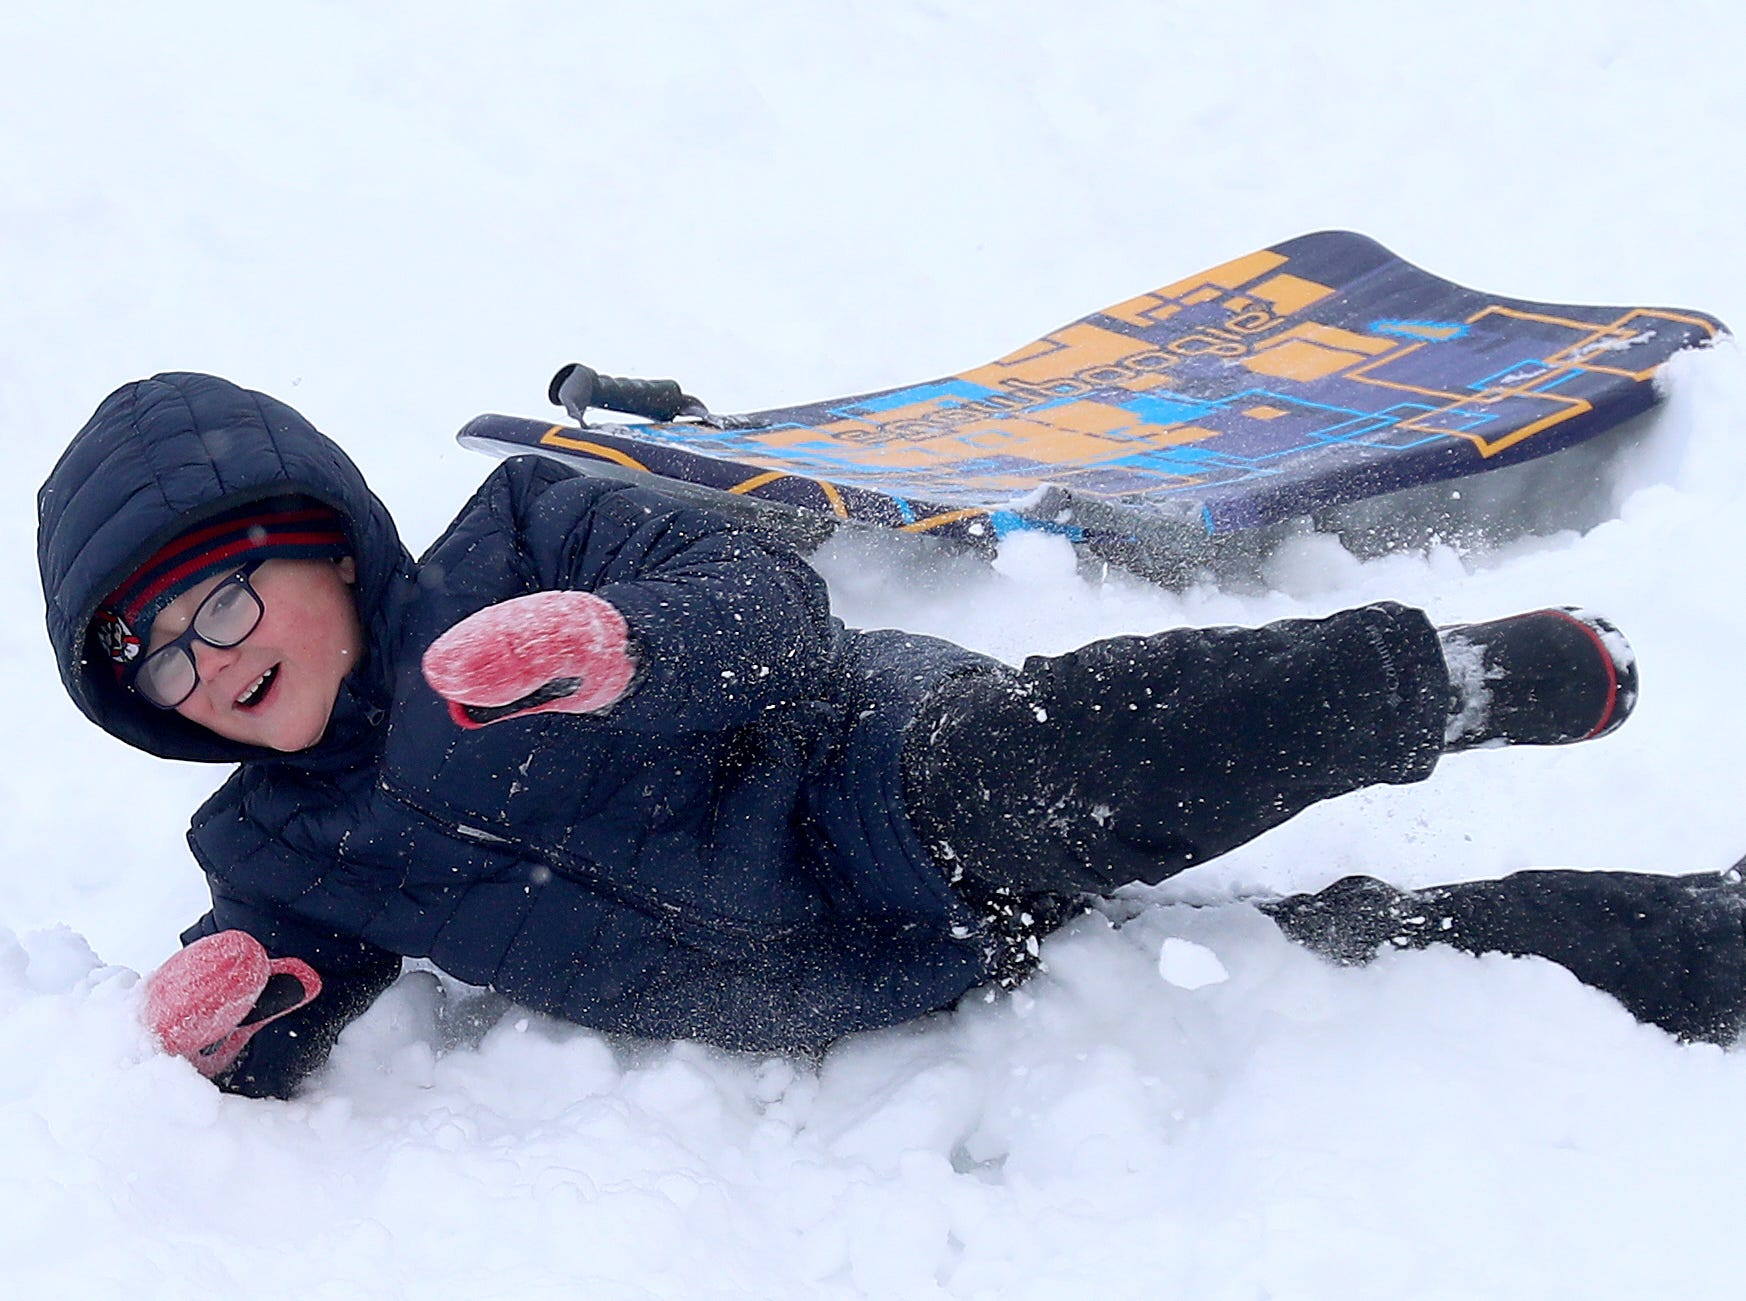 Several inches of snow brought New Years Day fun to several families at the Josten Park sled hill Tuesday, January 1, 2019 in Bellevue, Wis